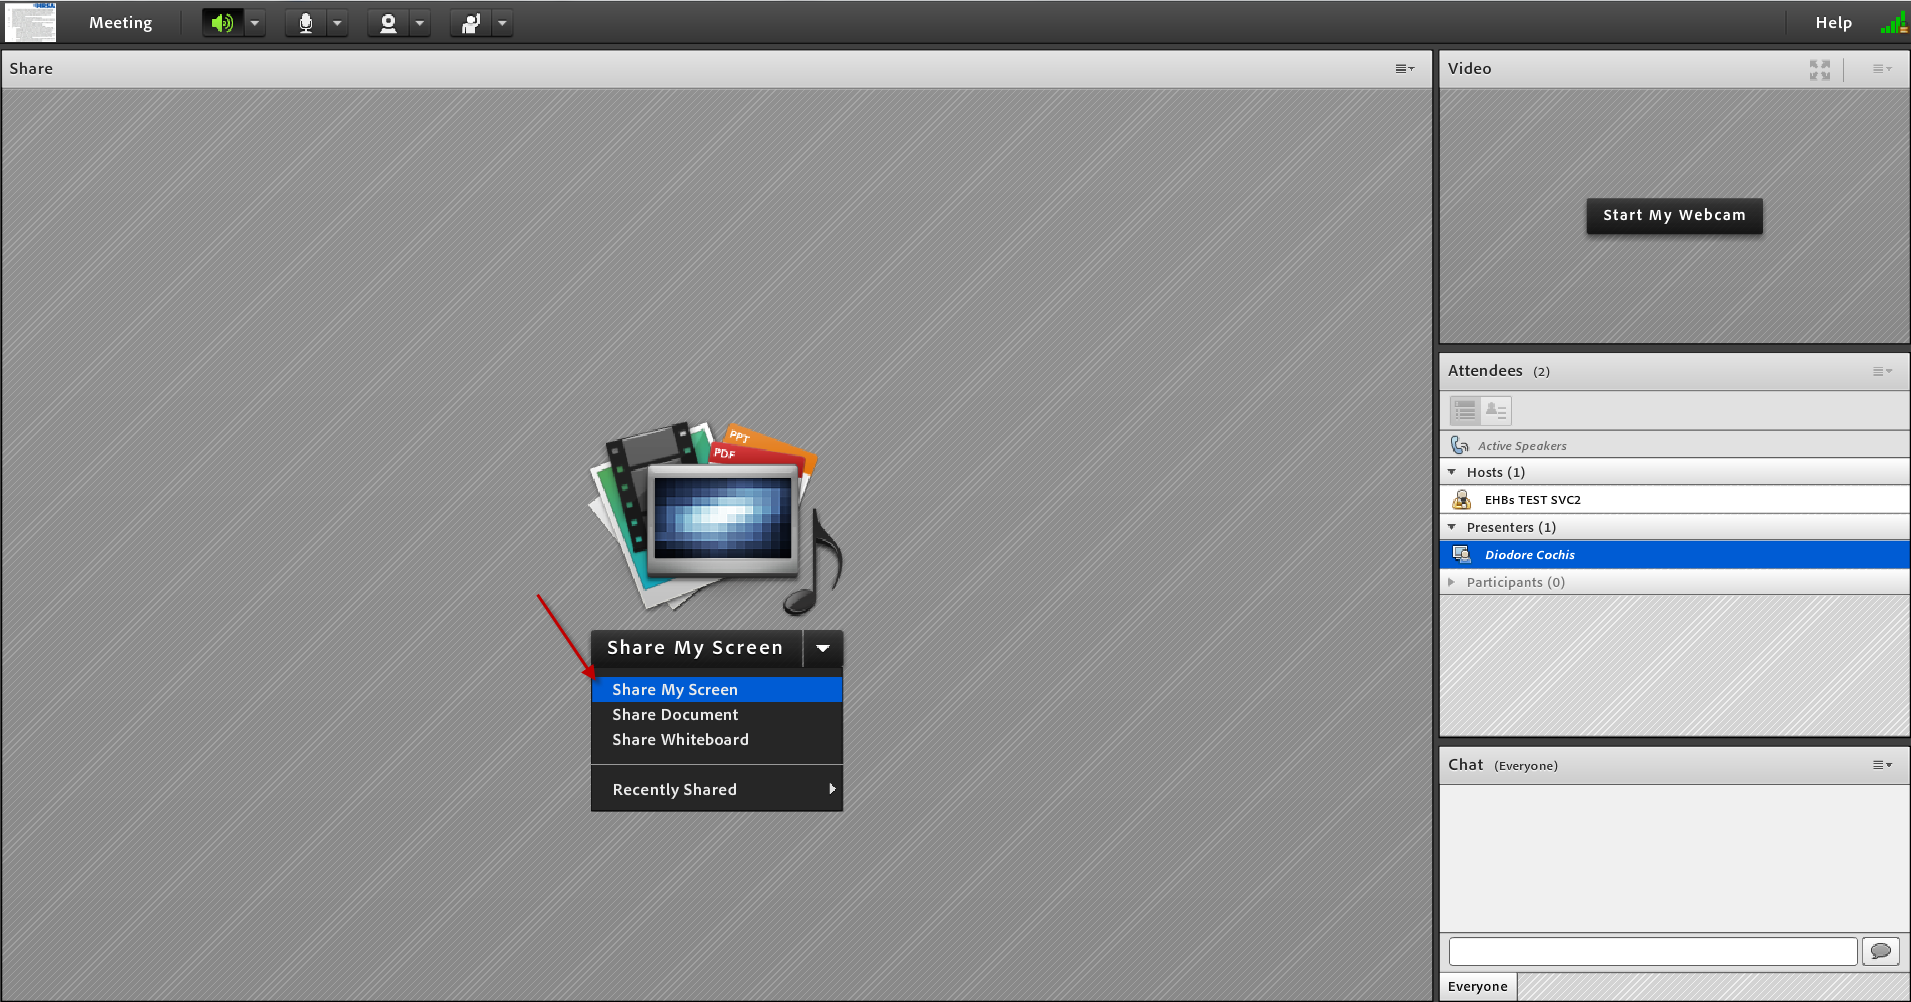 Screenshot of Adobe Connect Screen Sharing in progress